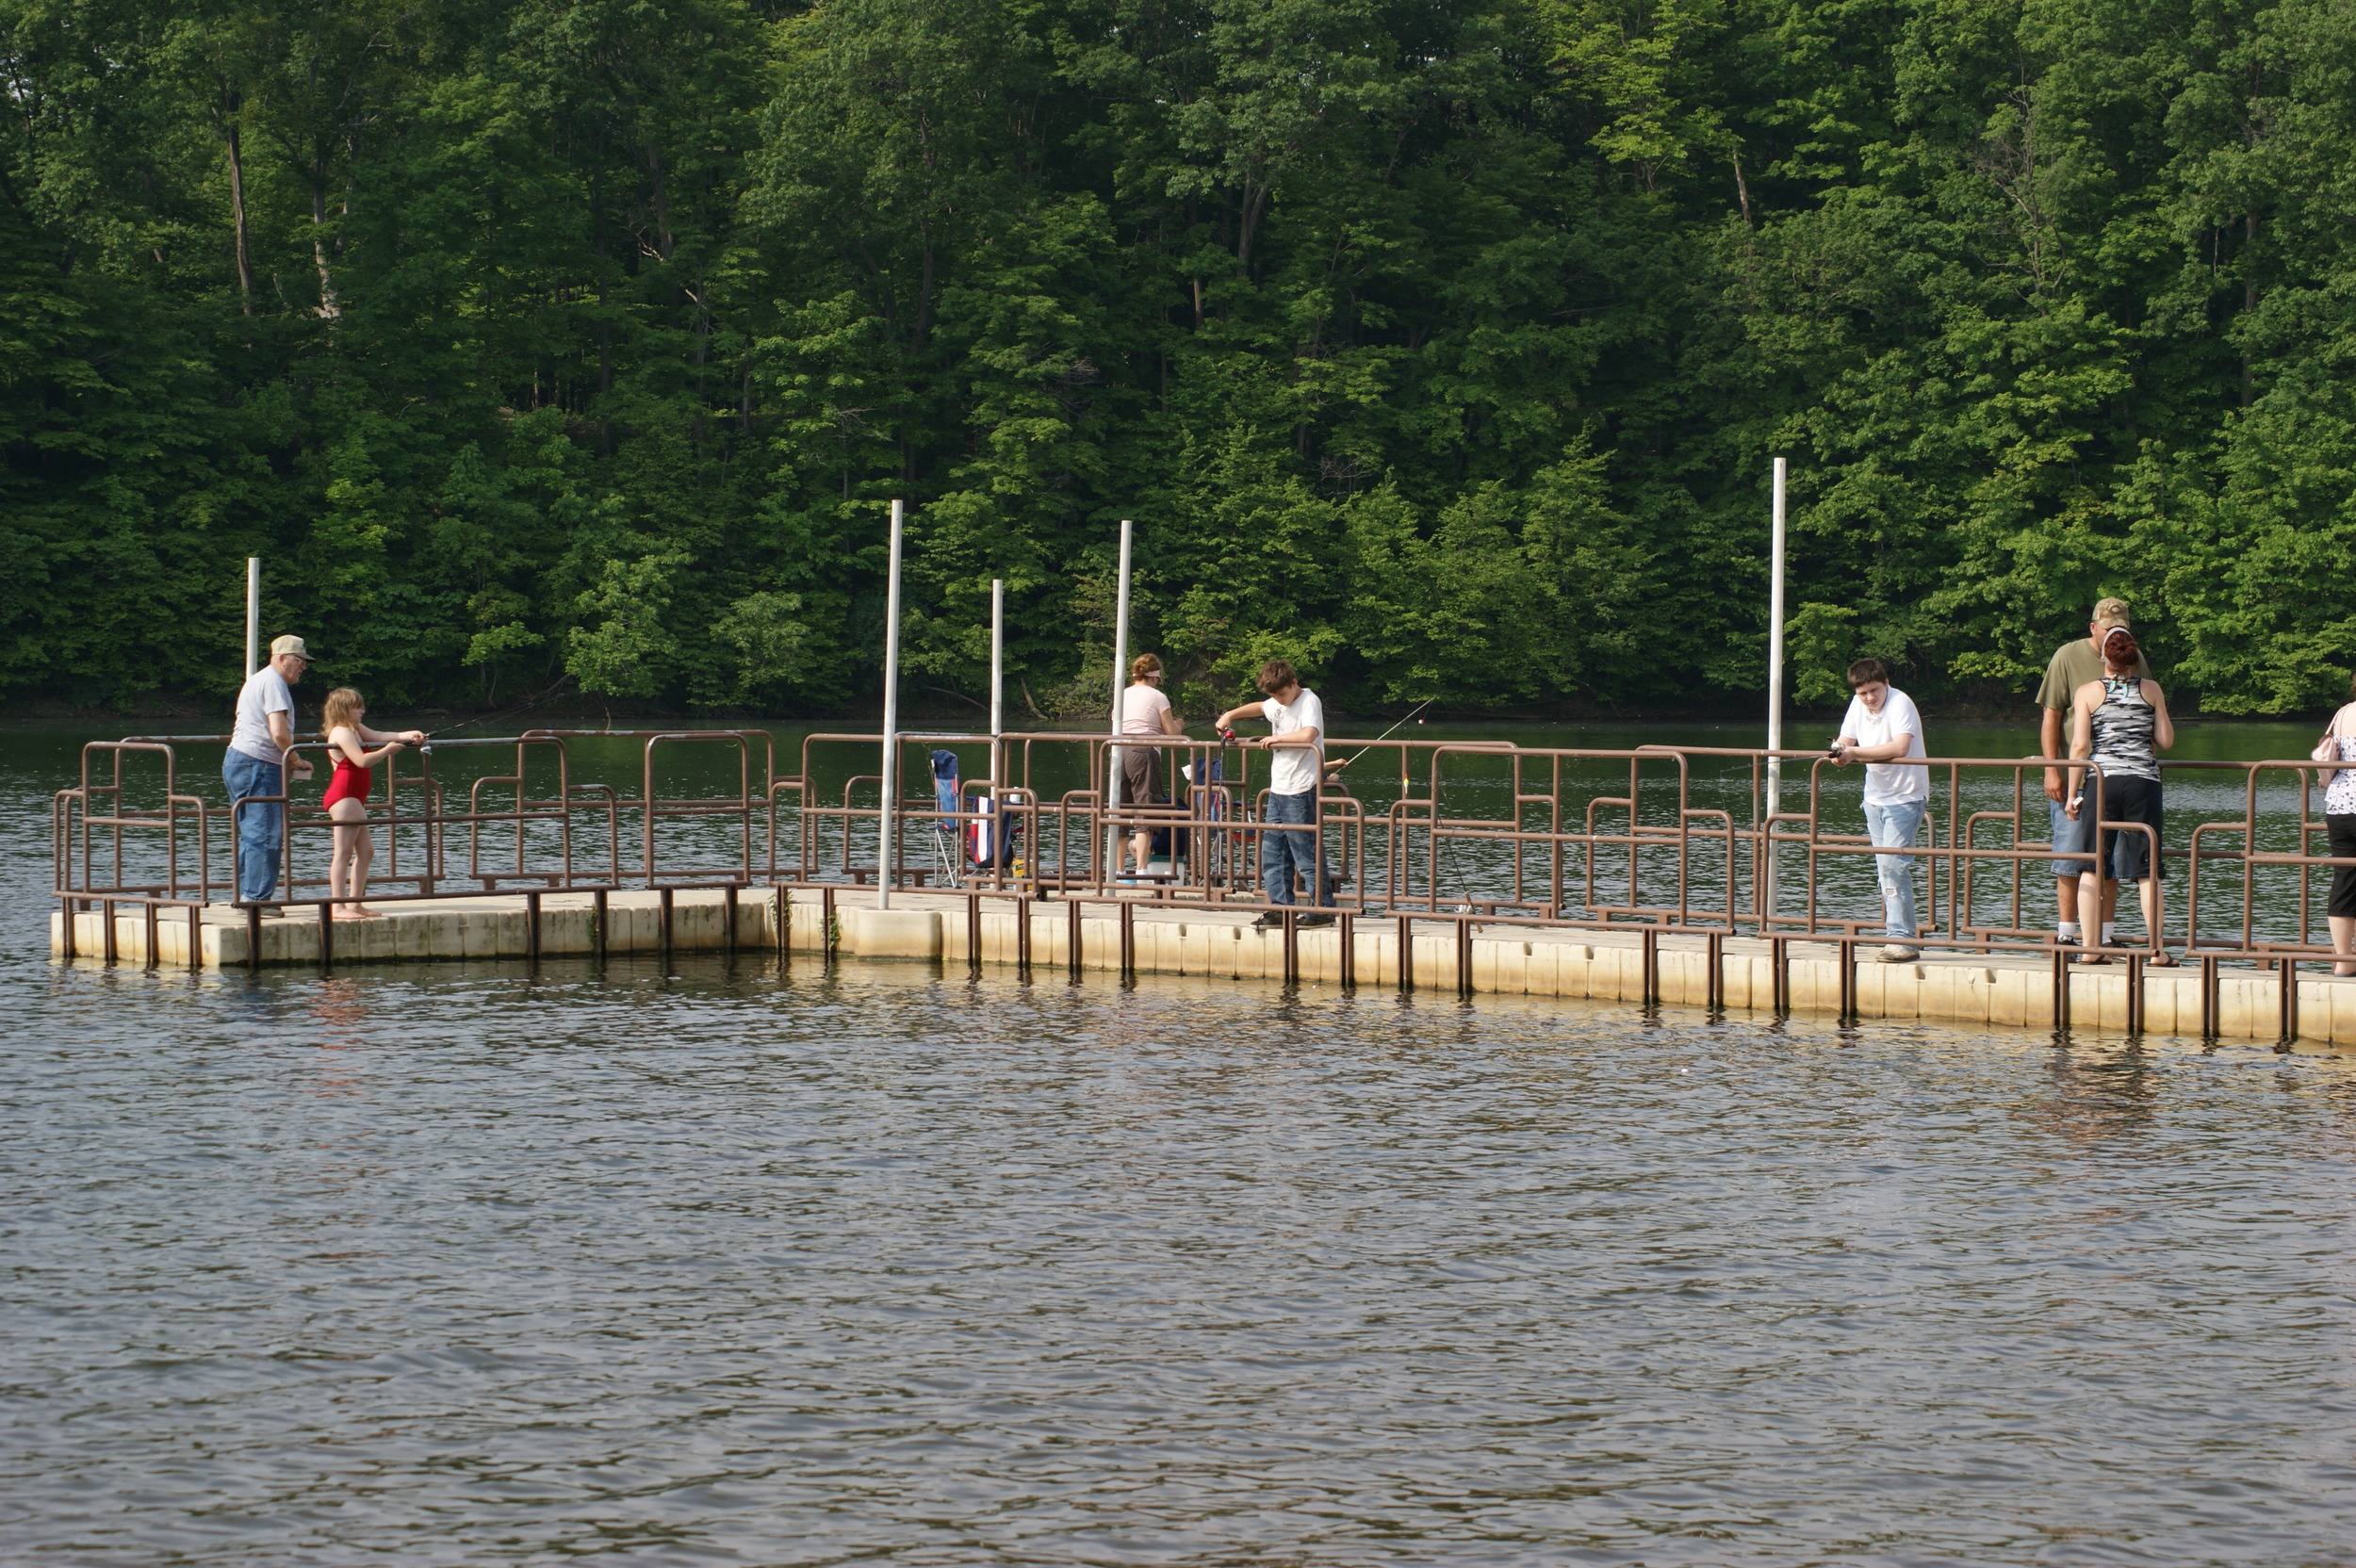 Our 125' wheelchair accessible fishing pier is certainly one of our best amenities to offer to our patrons. This allows fishing access to everyone. Over 500' of shoreline fishing access is also available at our lakefront recreation area! Don't forget, bait is available at our gatehouse!